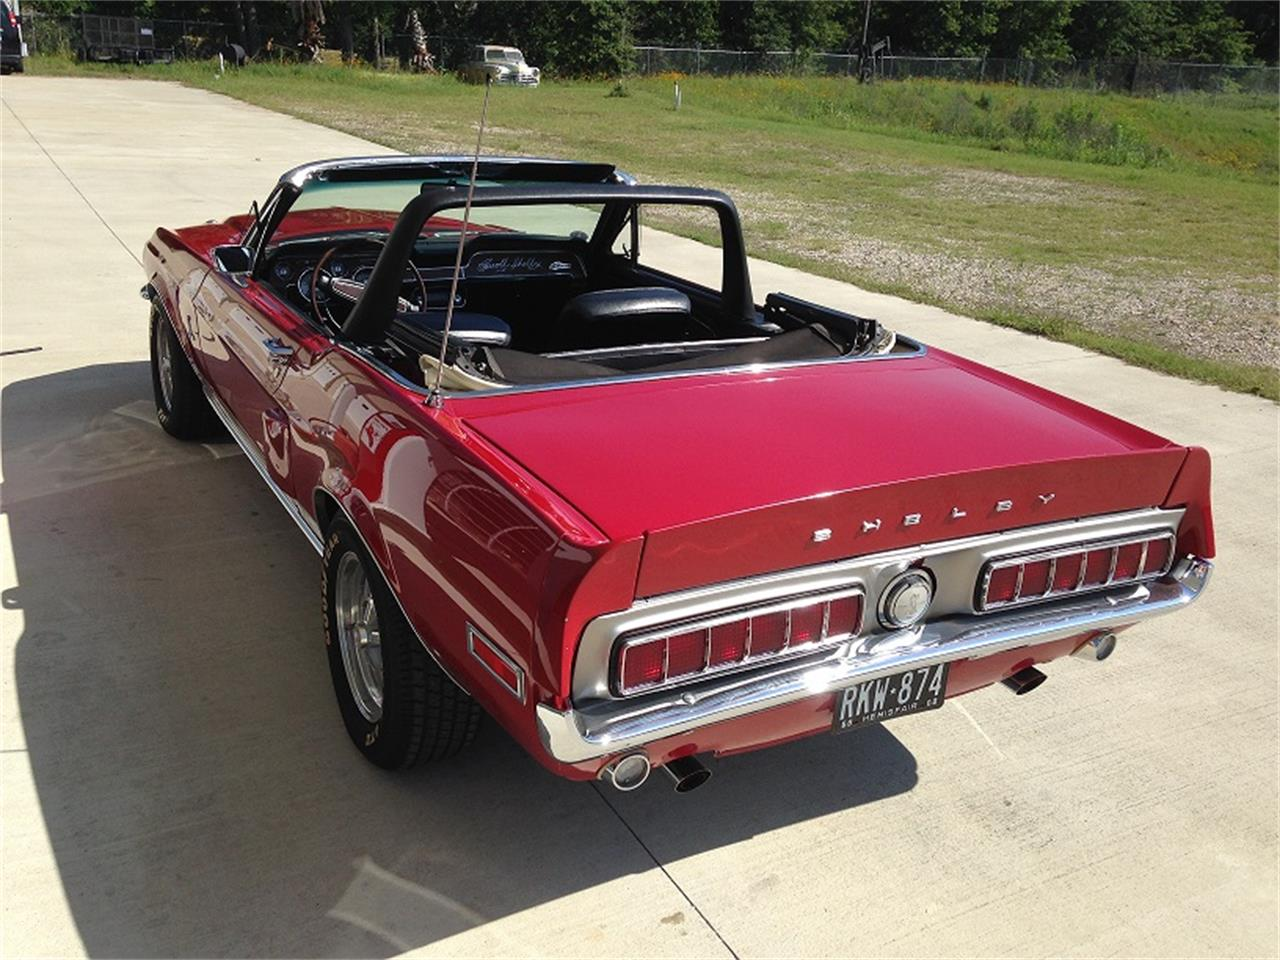 Cars For Sale In Houston: 1968 Shelby GT500 For Sale